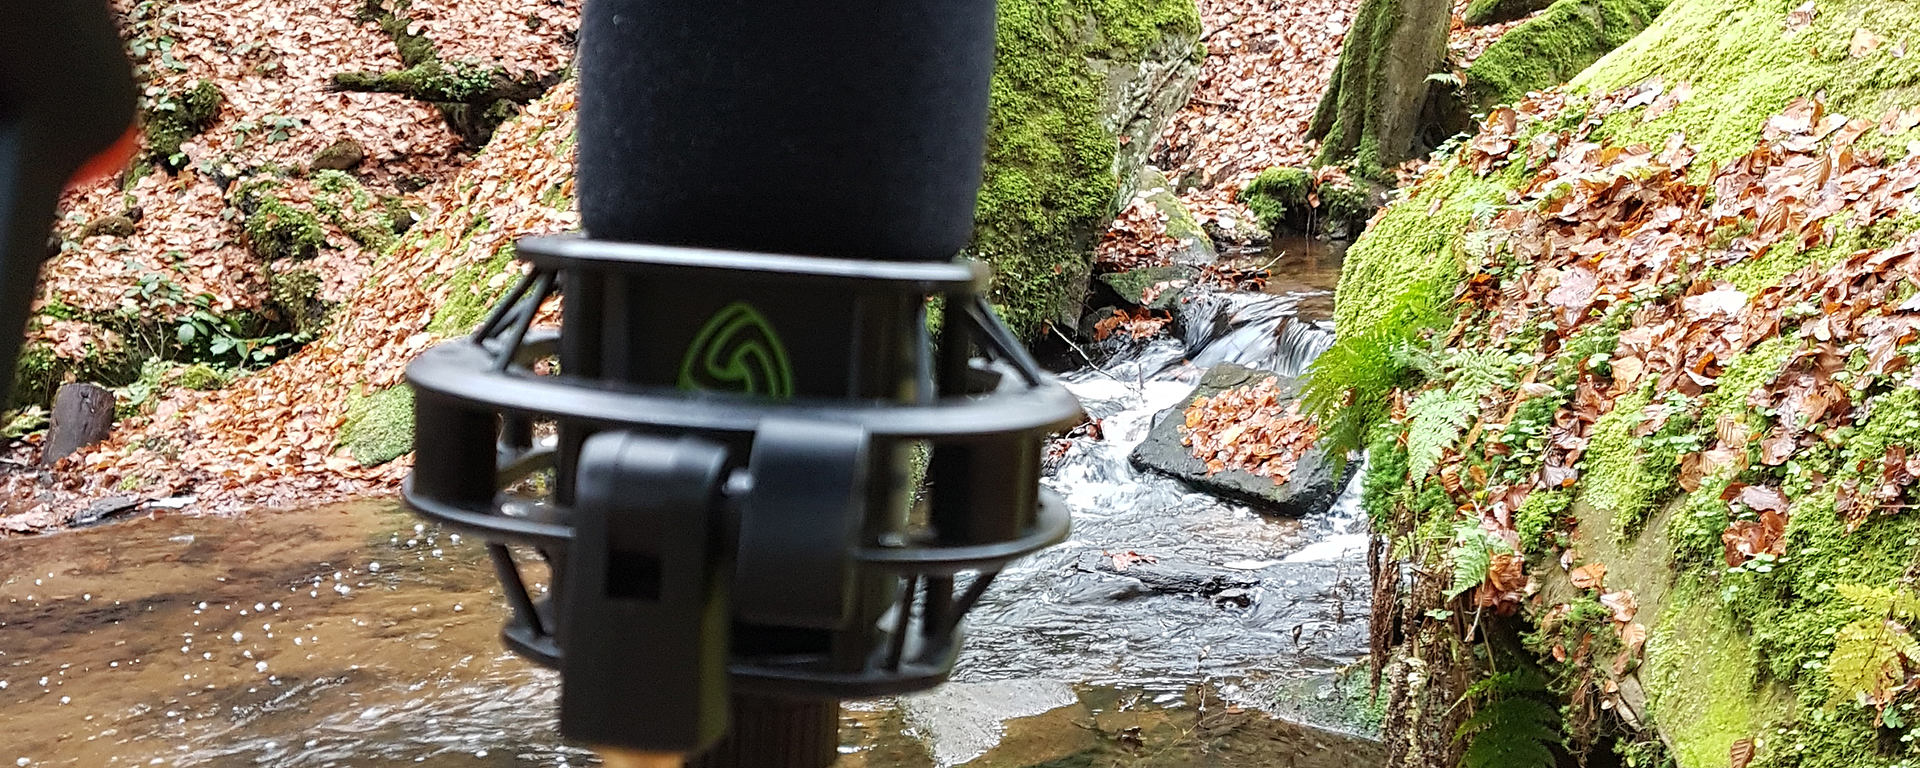 LCT 540 S perfect for Field Recording